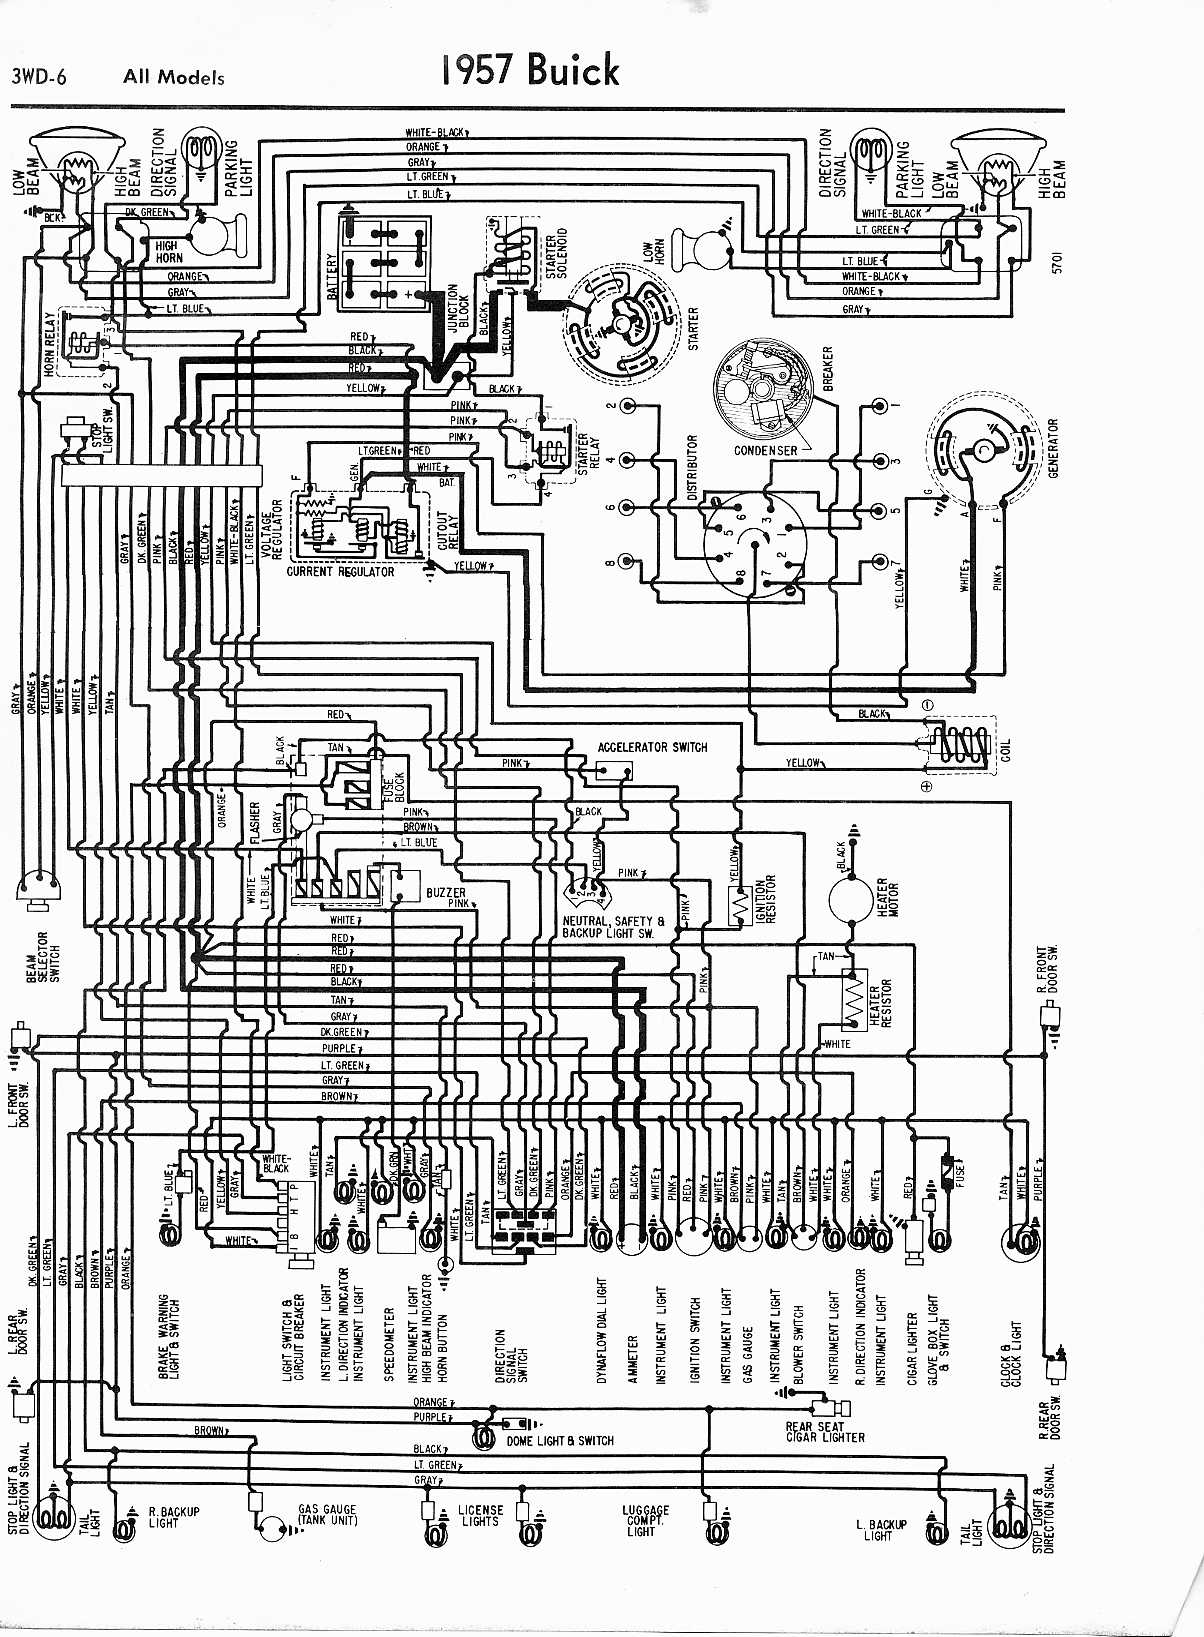 wiring diagram for 1960 buick all models wire data u2022 rh coller site Buick Riviera 95 Wiring-Diagram Buick Stereo Wiring Diagram